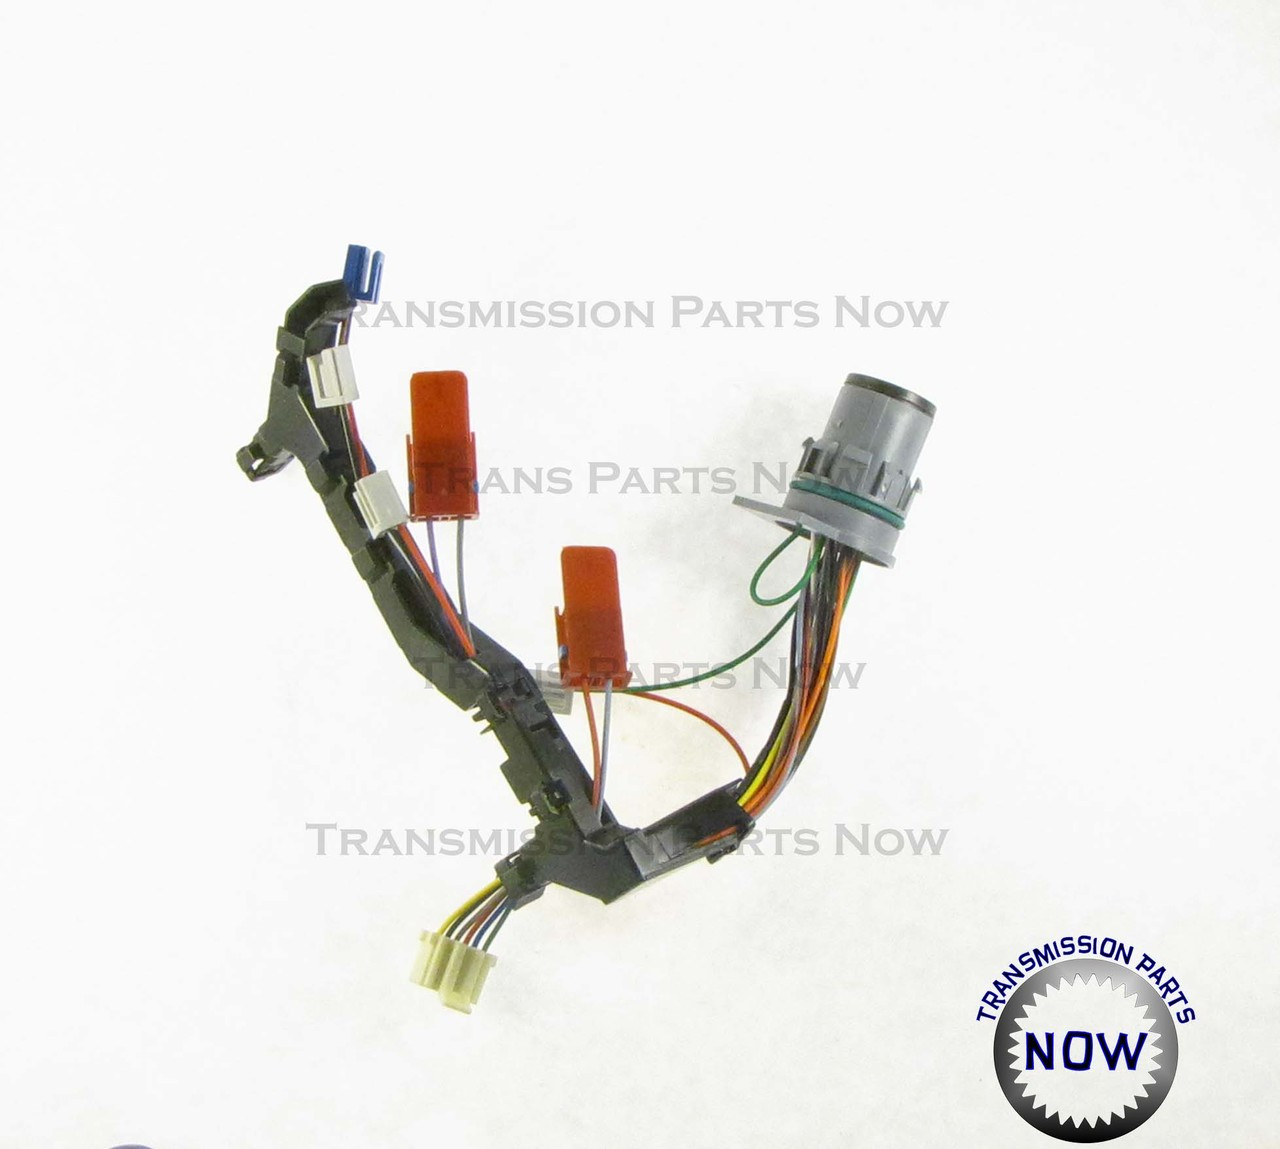 [DIAGRAM_34OR]  Allison transmission wire harness made in the USA Rostra | Rostra Wiring Harness |  | Transmission Parts Now